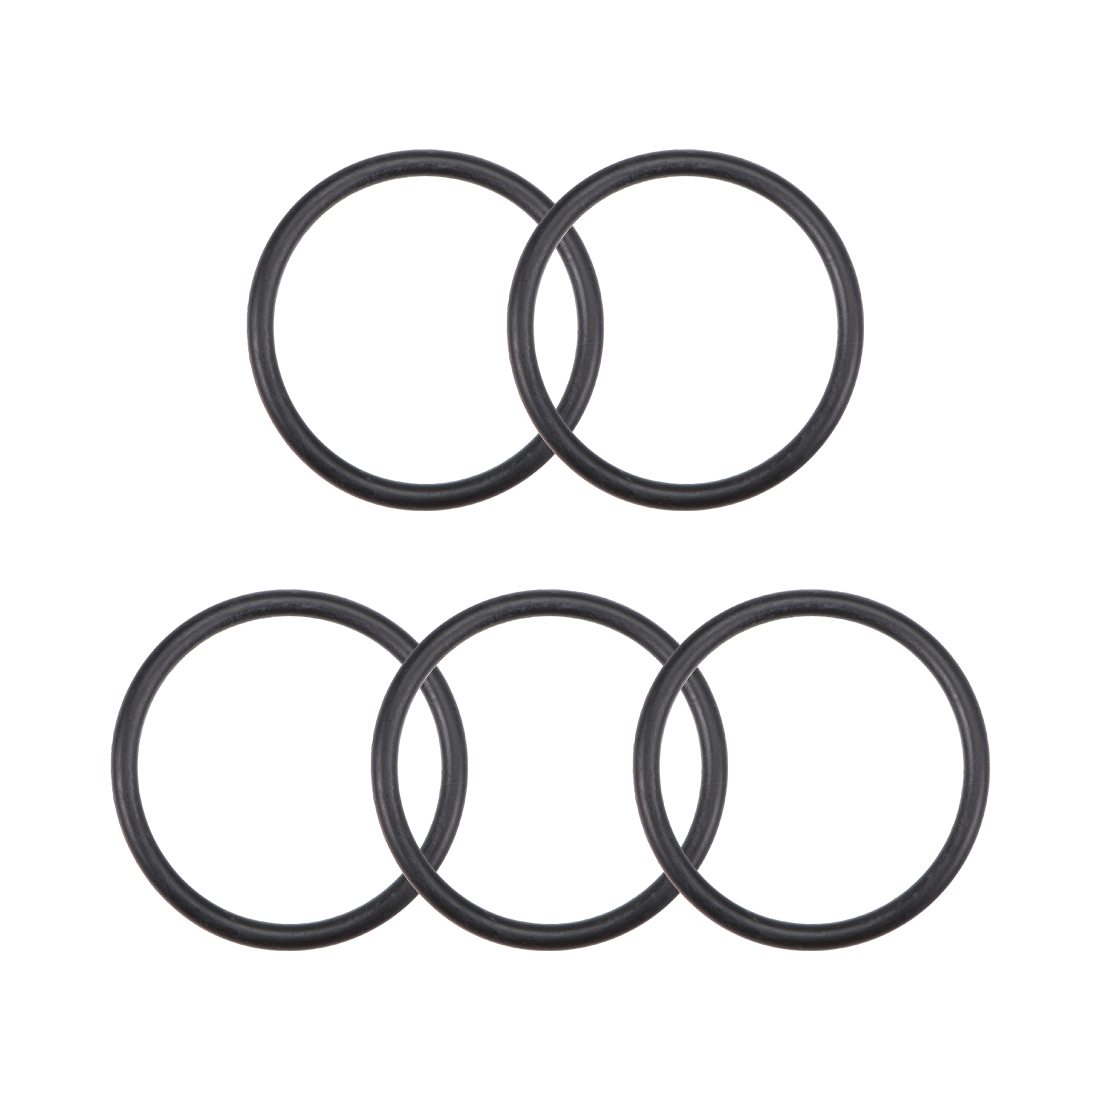 O-Rings Nitrile Rubber 29mm x 34.3mm x 2.65mm Round Seal Gasket 5 Pcs